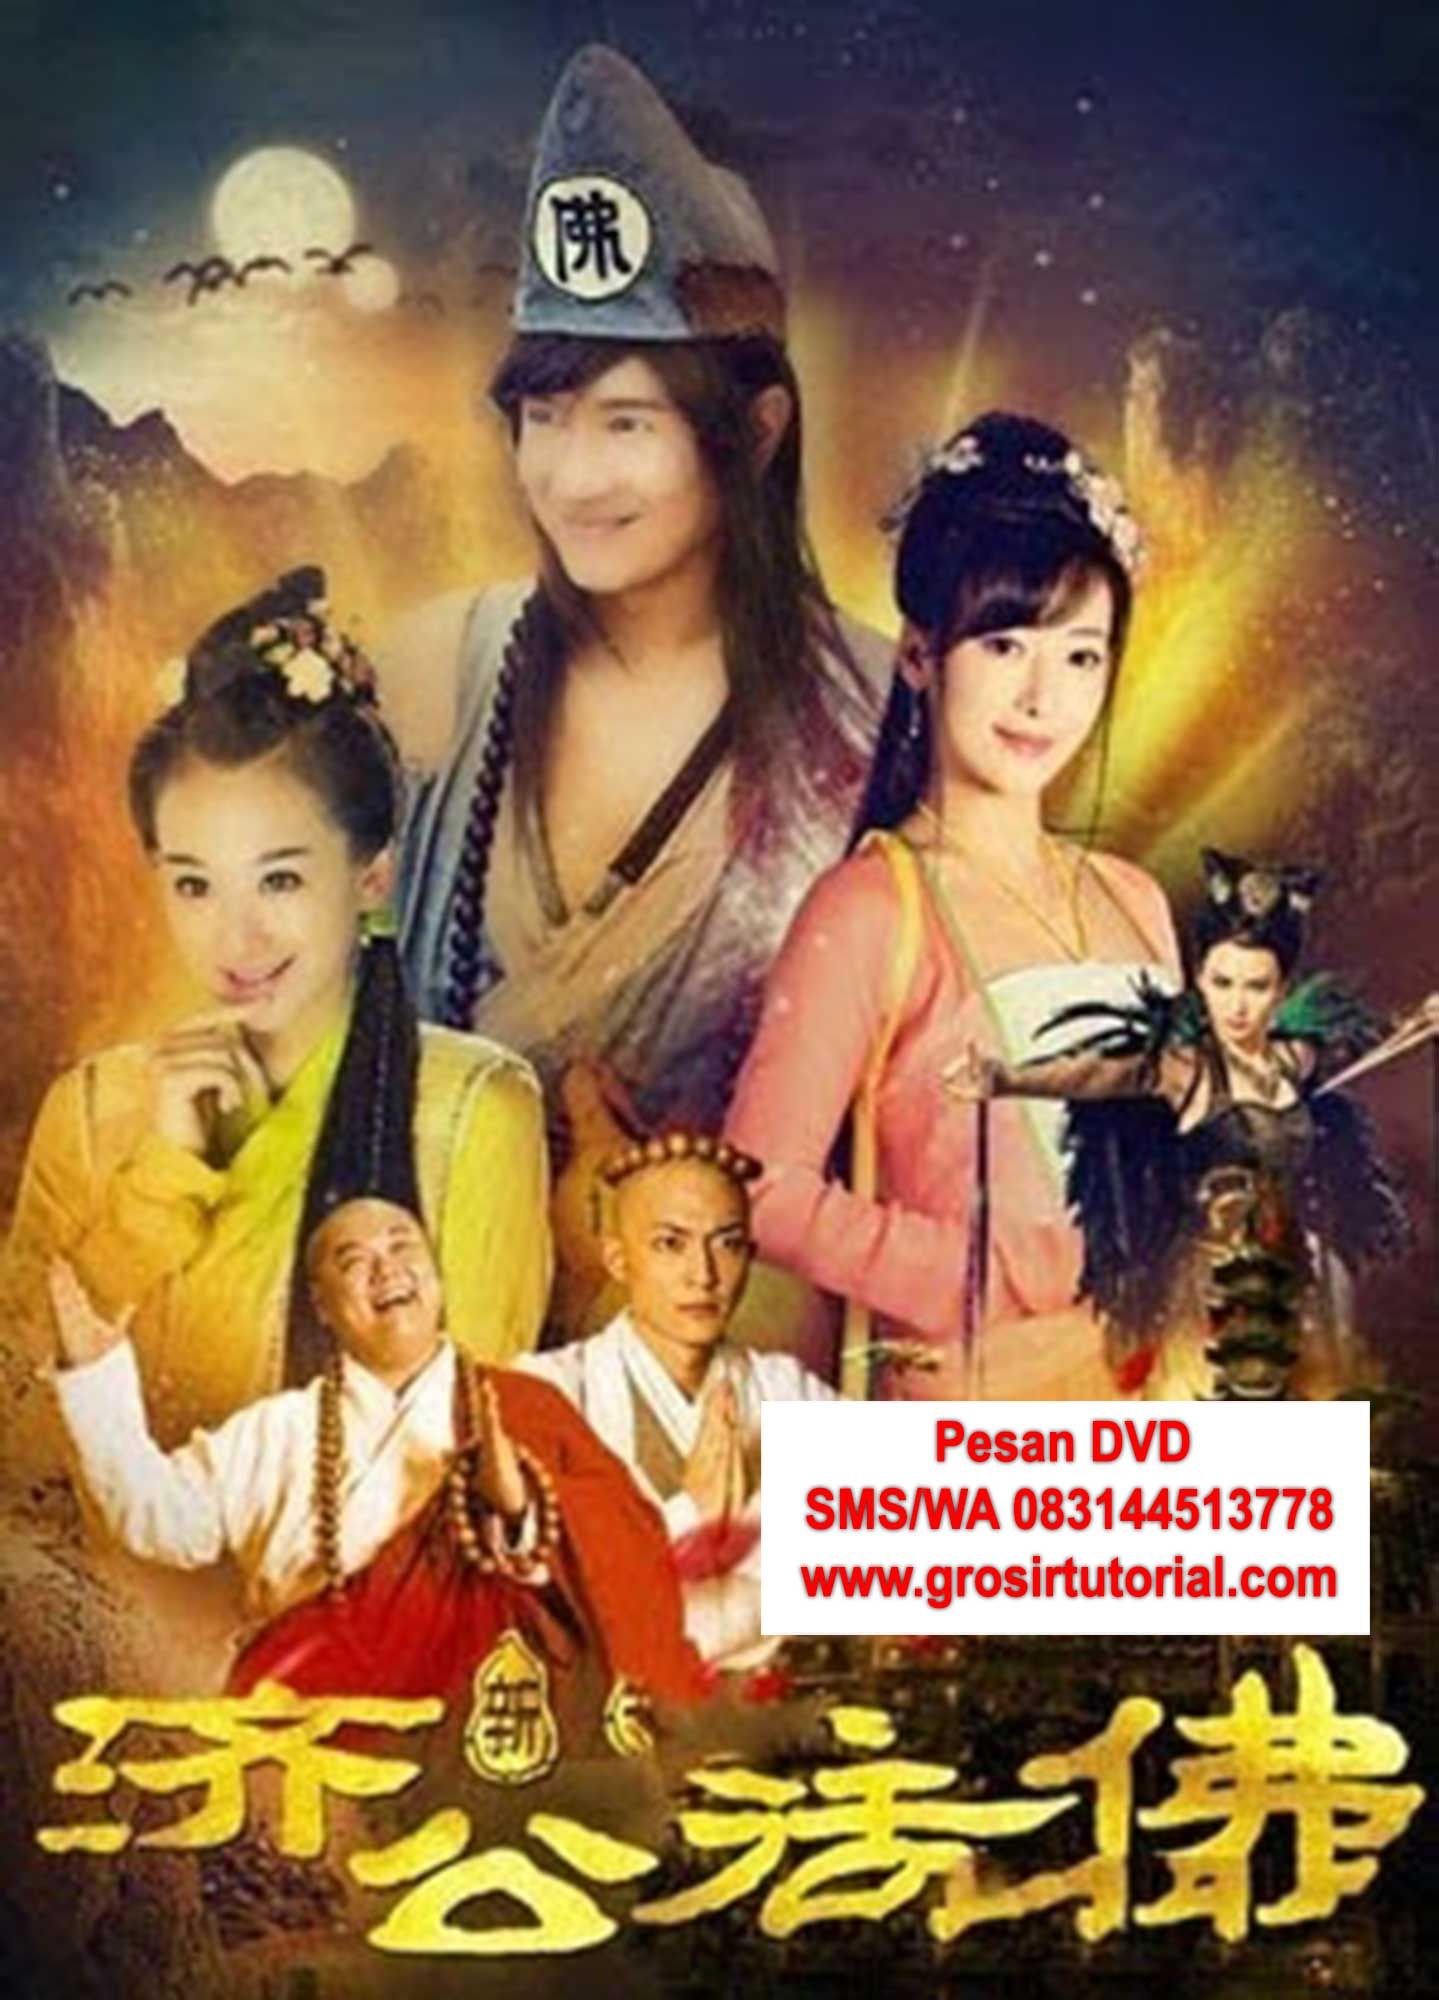 cari-DVD-mandarin-New-Mad-Monk